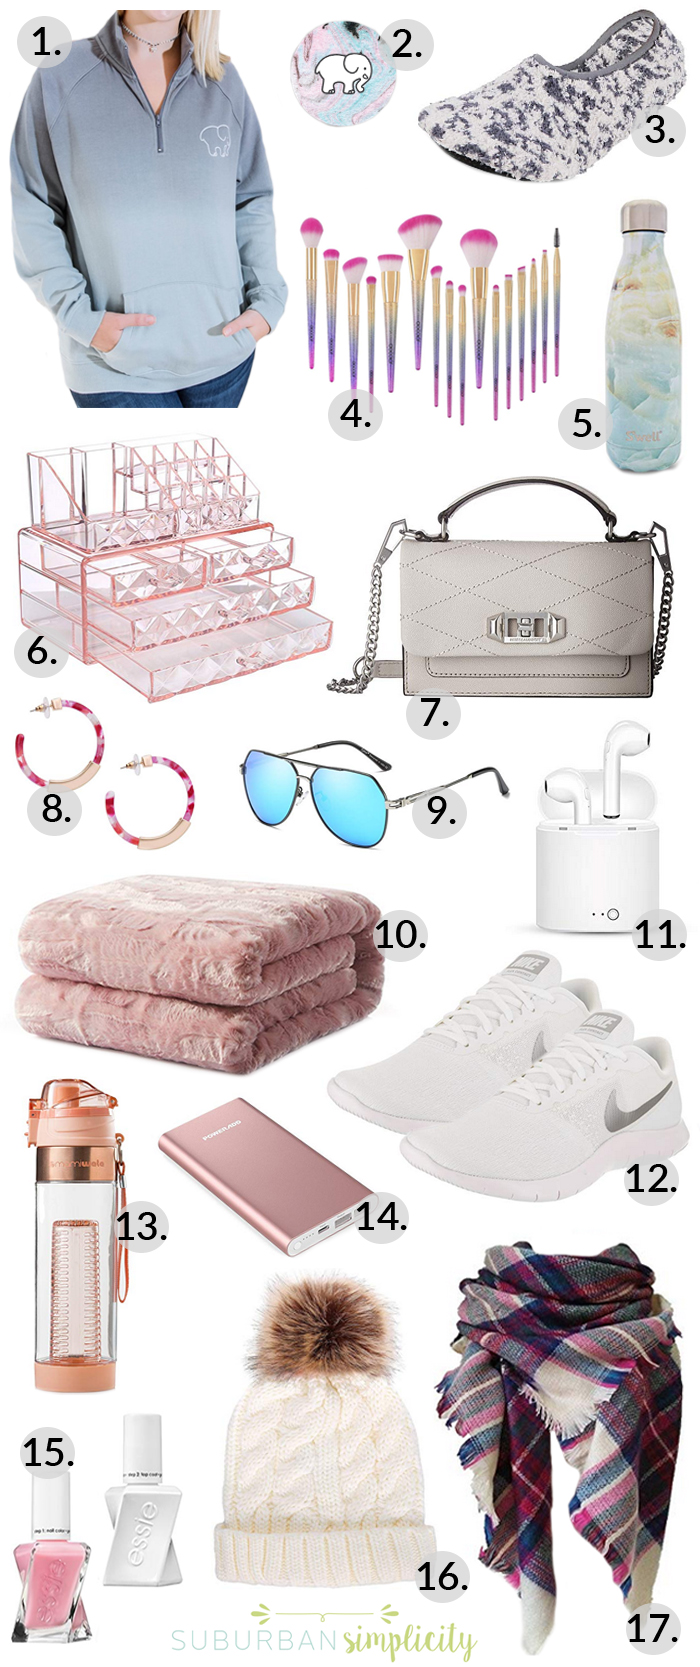 Popular Christmas Gifts For Teenage Girl 2018.Christmas Gifts For Teen Girls Suburban Simplicity